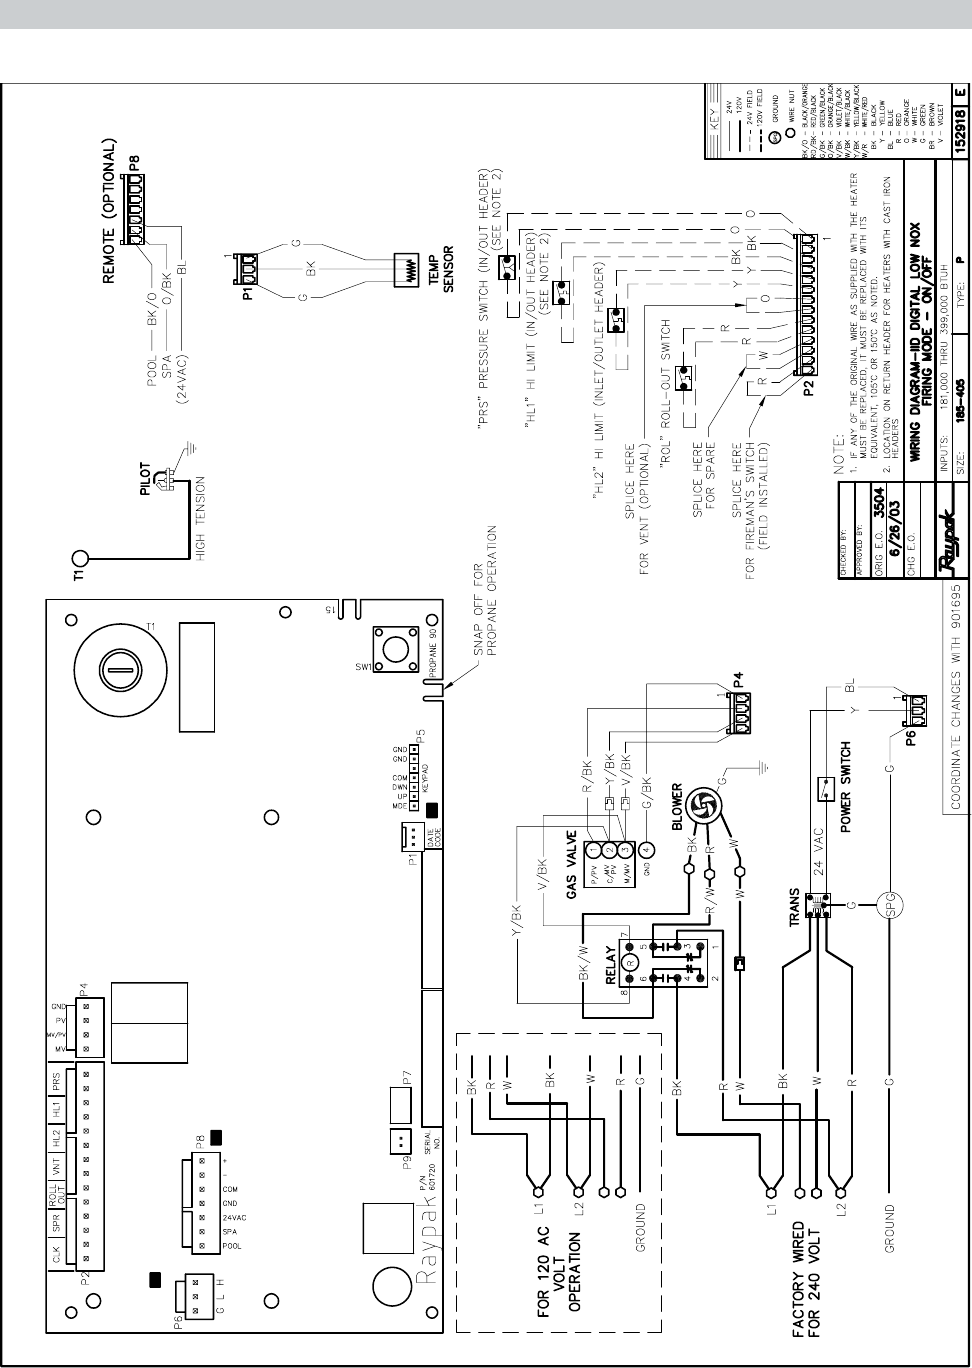 b14d87e6 0f98 4745 803a 90b704b6b654 bg1c page 28 of raypak swimming pool heater rp2100 user guide raypak 2100 wiring diagram at gsmx.co